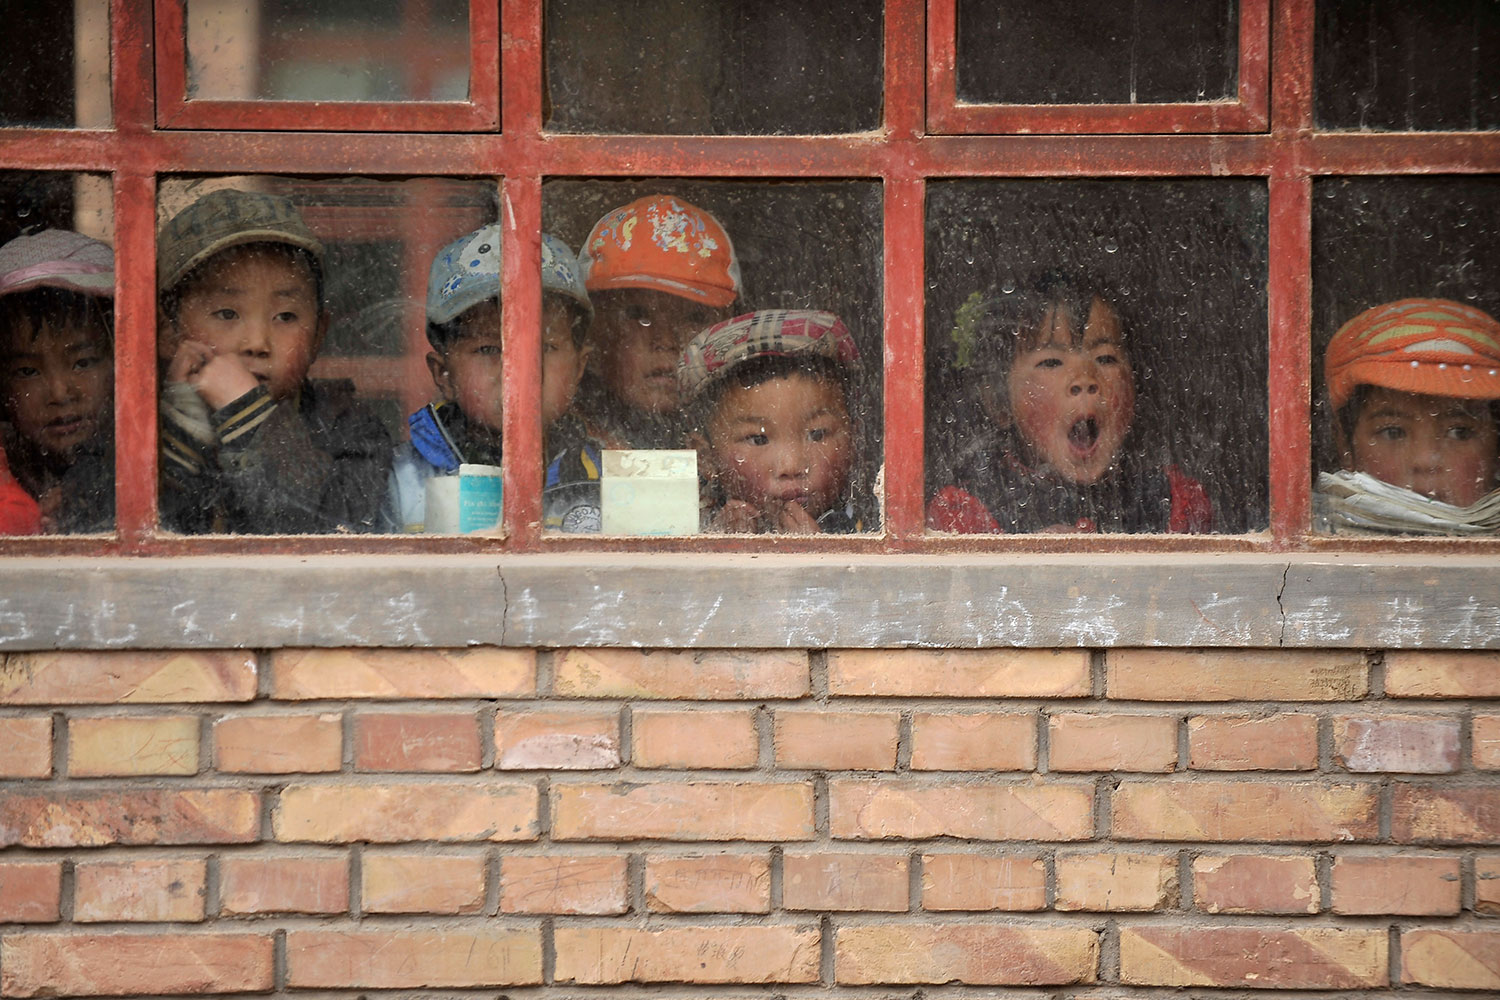 Children look out from their classroom in a (truly) rural primary school in Min County, Gansu Province, China on June 1, 2011. The school, with five teachers and 102 students, is on a high mountain. We see the adorable faces of several small children looking out weather-beaten window panes hung on a yellow brick wall. Faded chalk writing of chinese characters can be seen scribbled on the concrete sill. REUTERS photo.